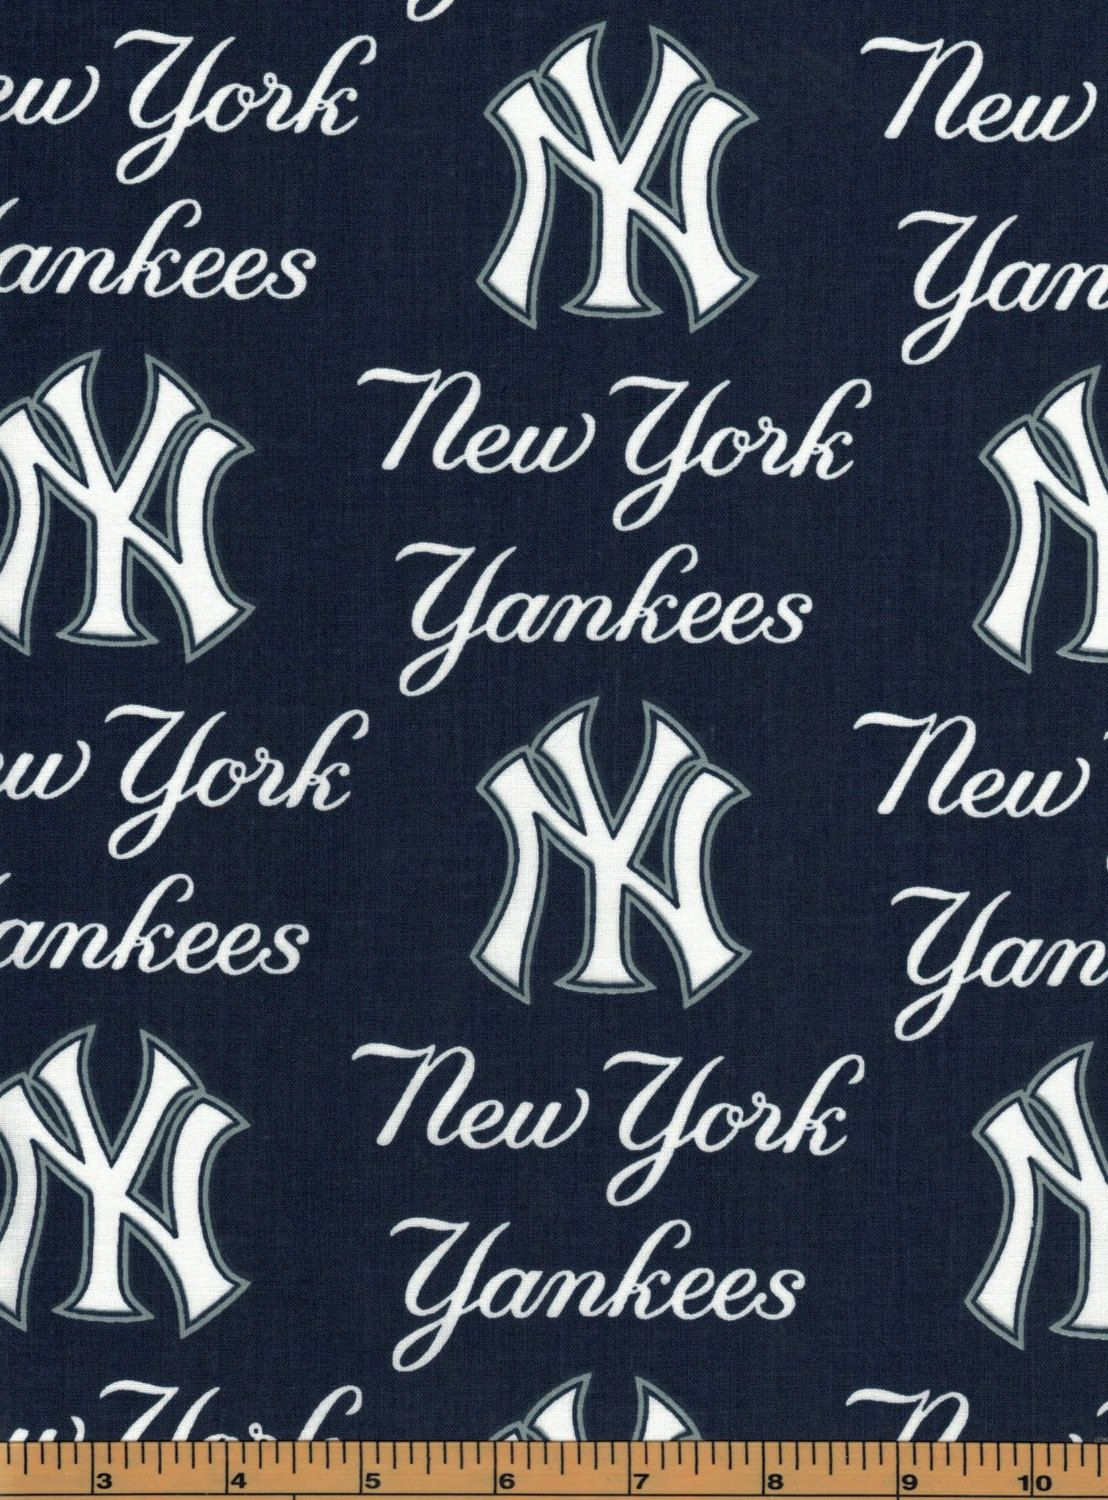 New York Yankees Baseball Fabric Mlb 100 Cotton By Fabric Etsy Baseball Fabric New York Yankees Fabric Letters